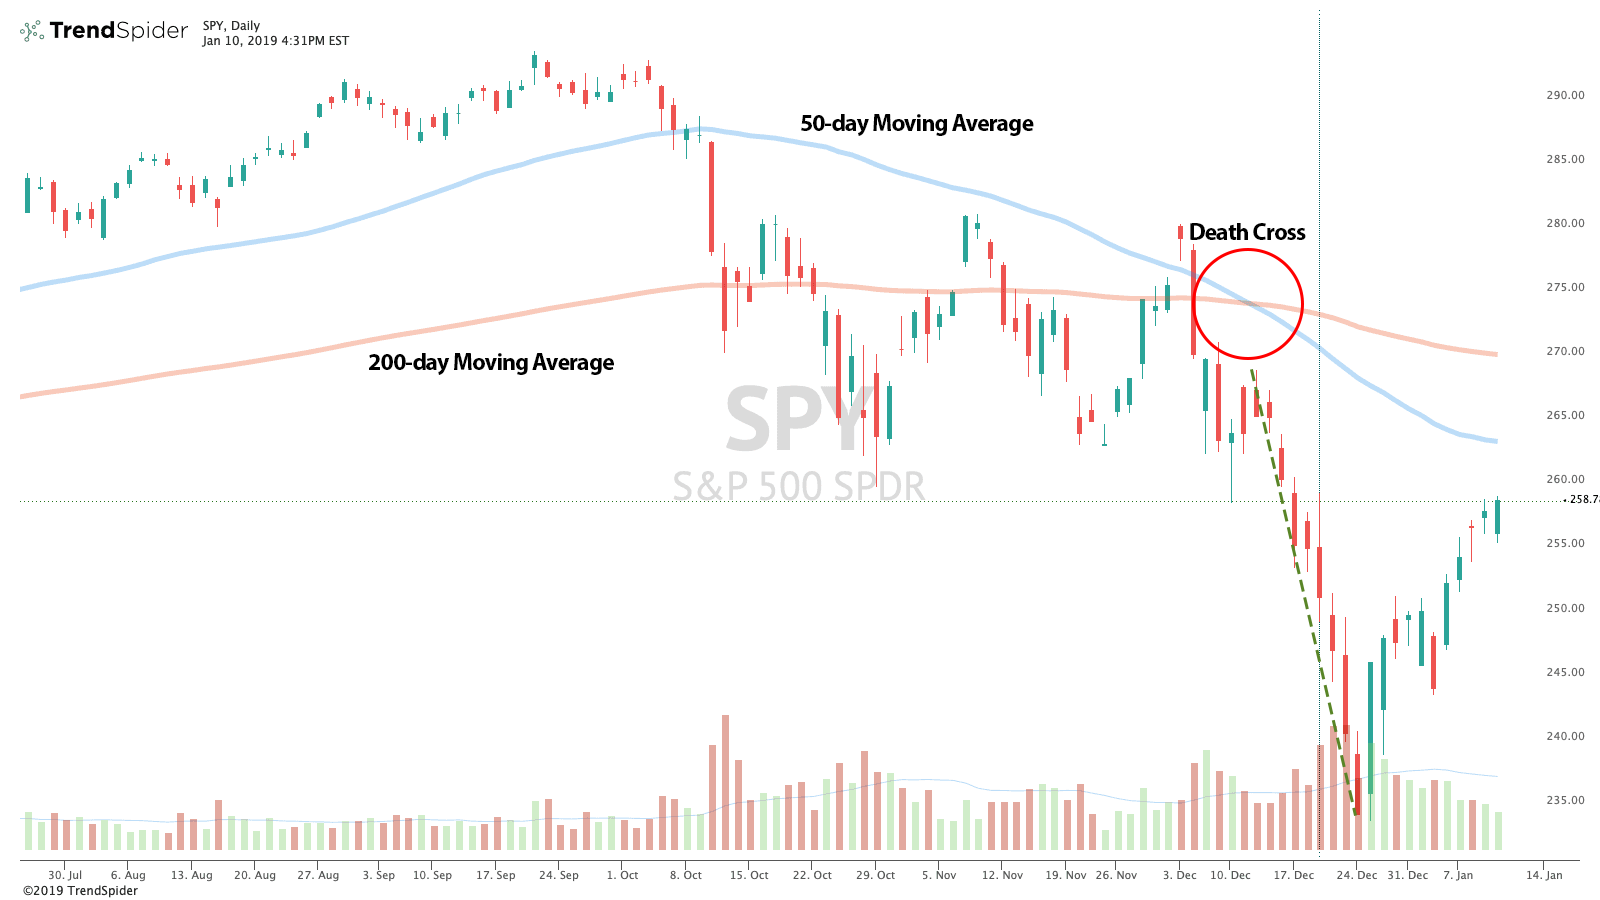 SPY Death Cross